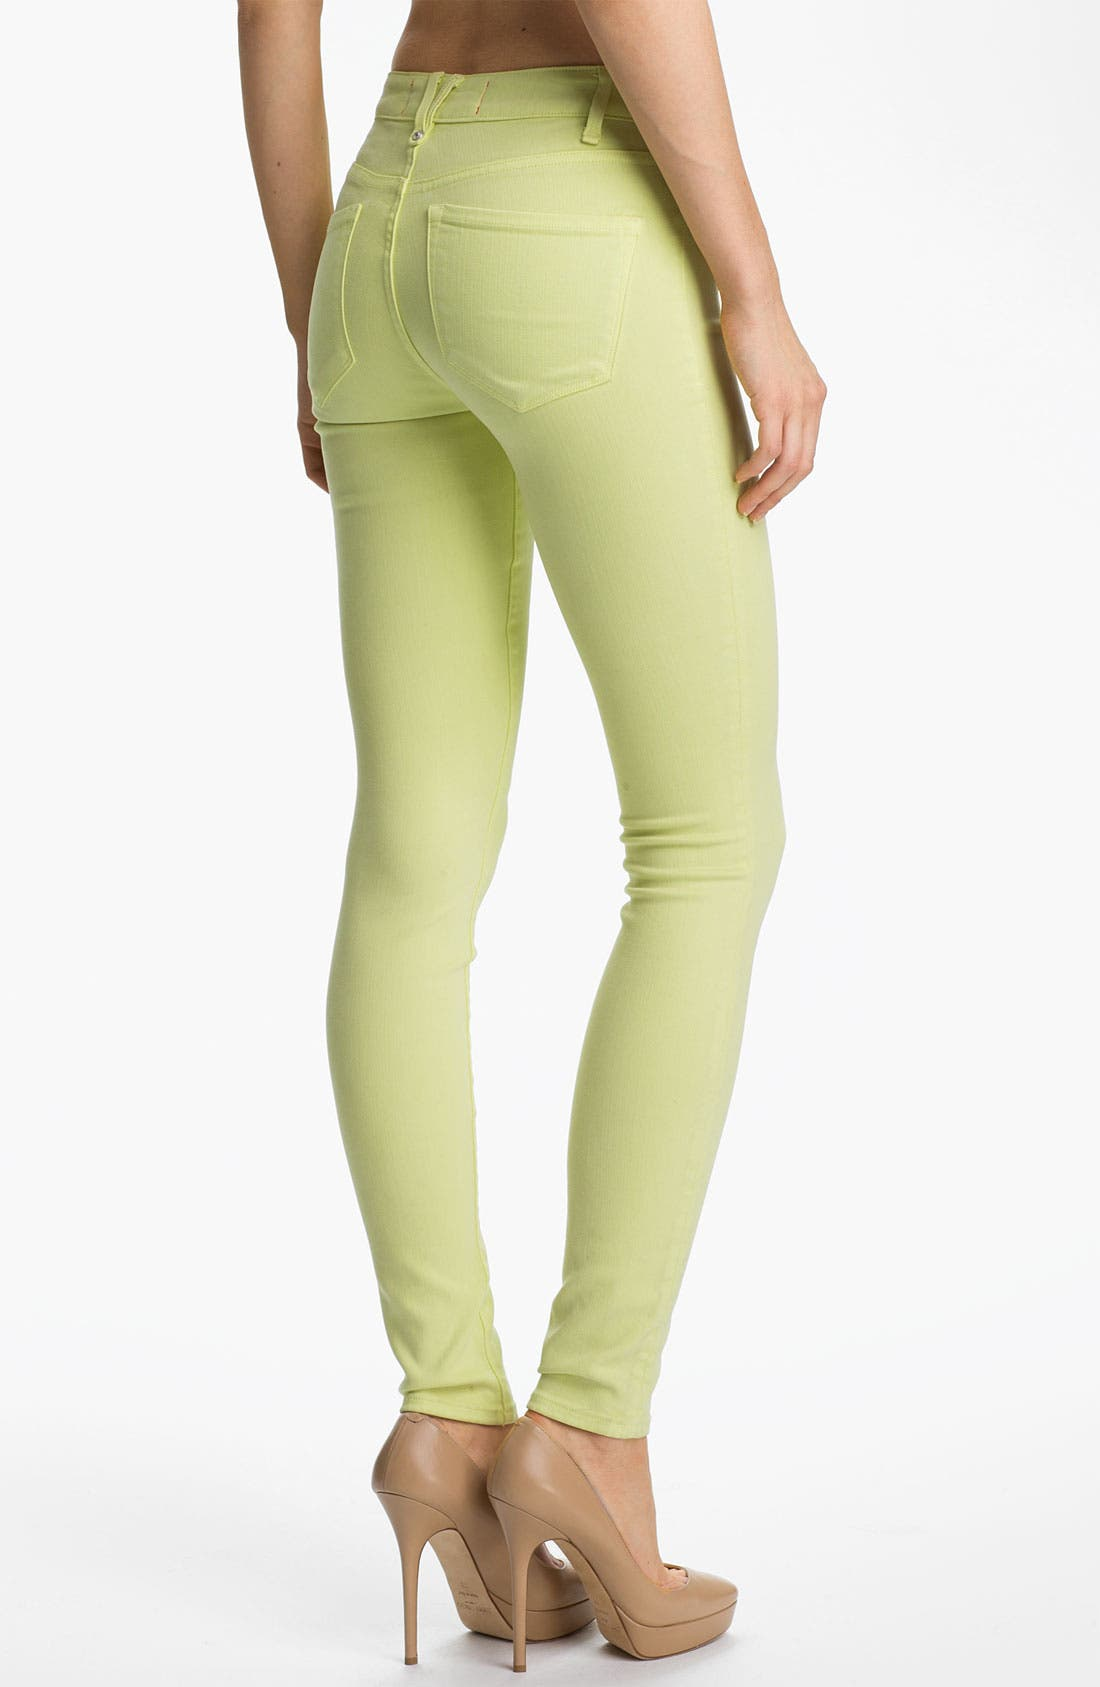 Alternate Image 2  - MARC BY MARC JACOBS 'Stick' Skinny Jeans (Lemon Sorbet)